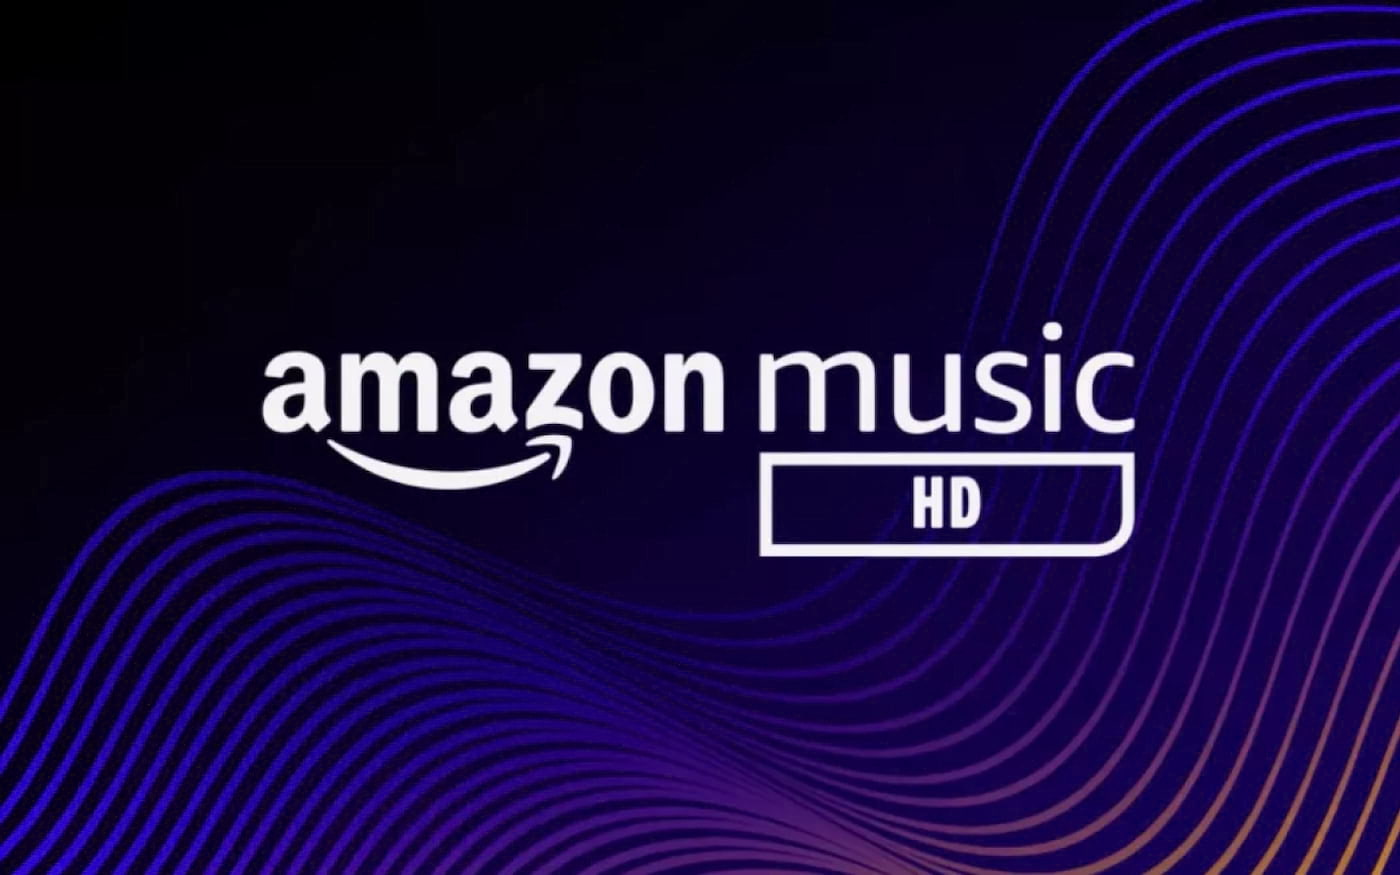 Amazon anuncia seu novo streaming de música Hi-fi, o Amazon Music HD